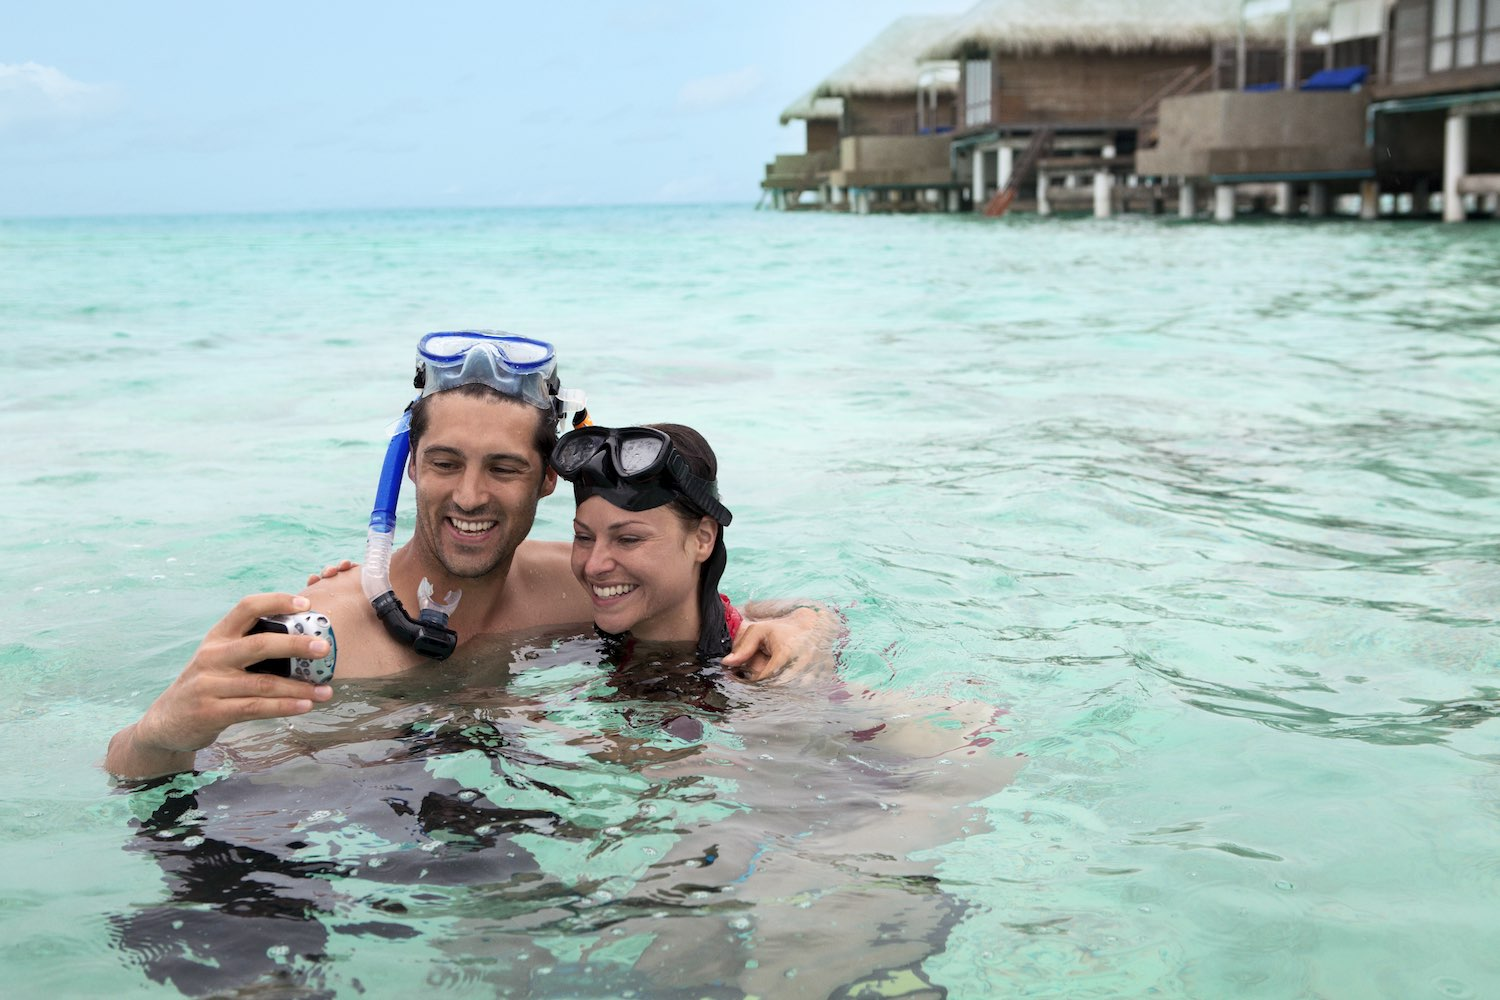 maldives-coco-bodu-hithi-activities-excursions-snorkelling-holiday-honeymoon-vacation-invite-to-paradise.jpg